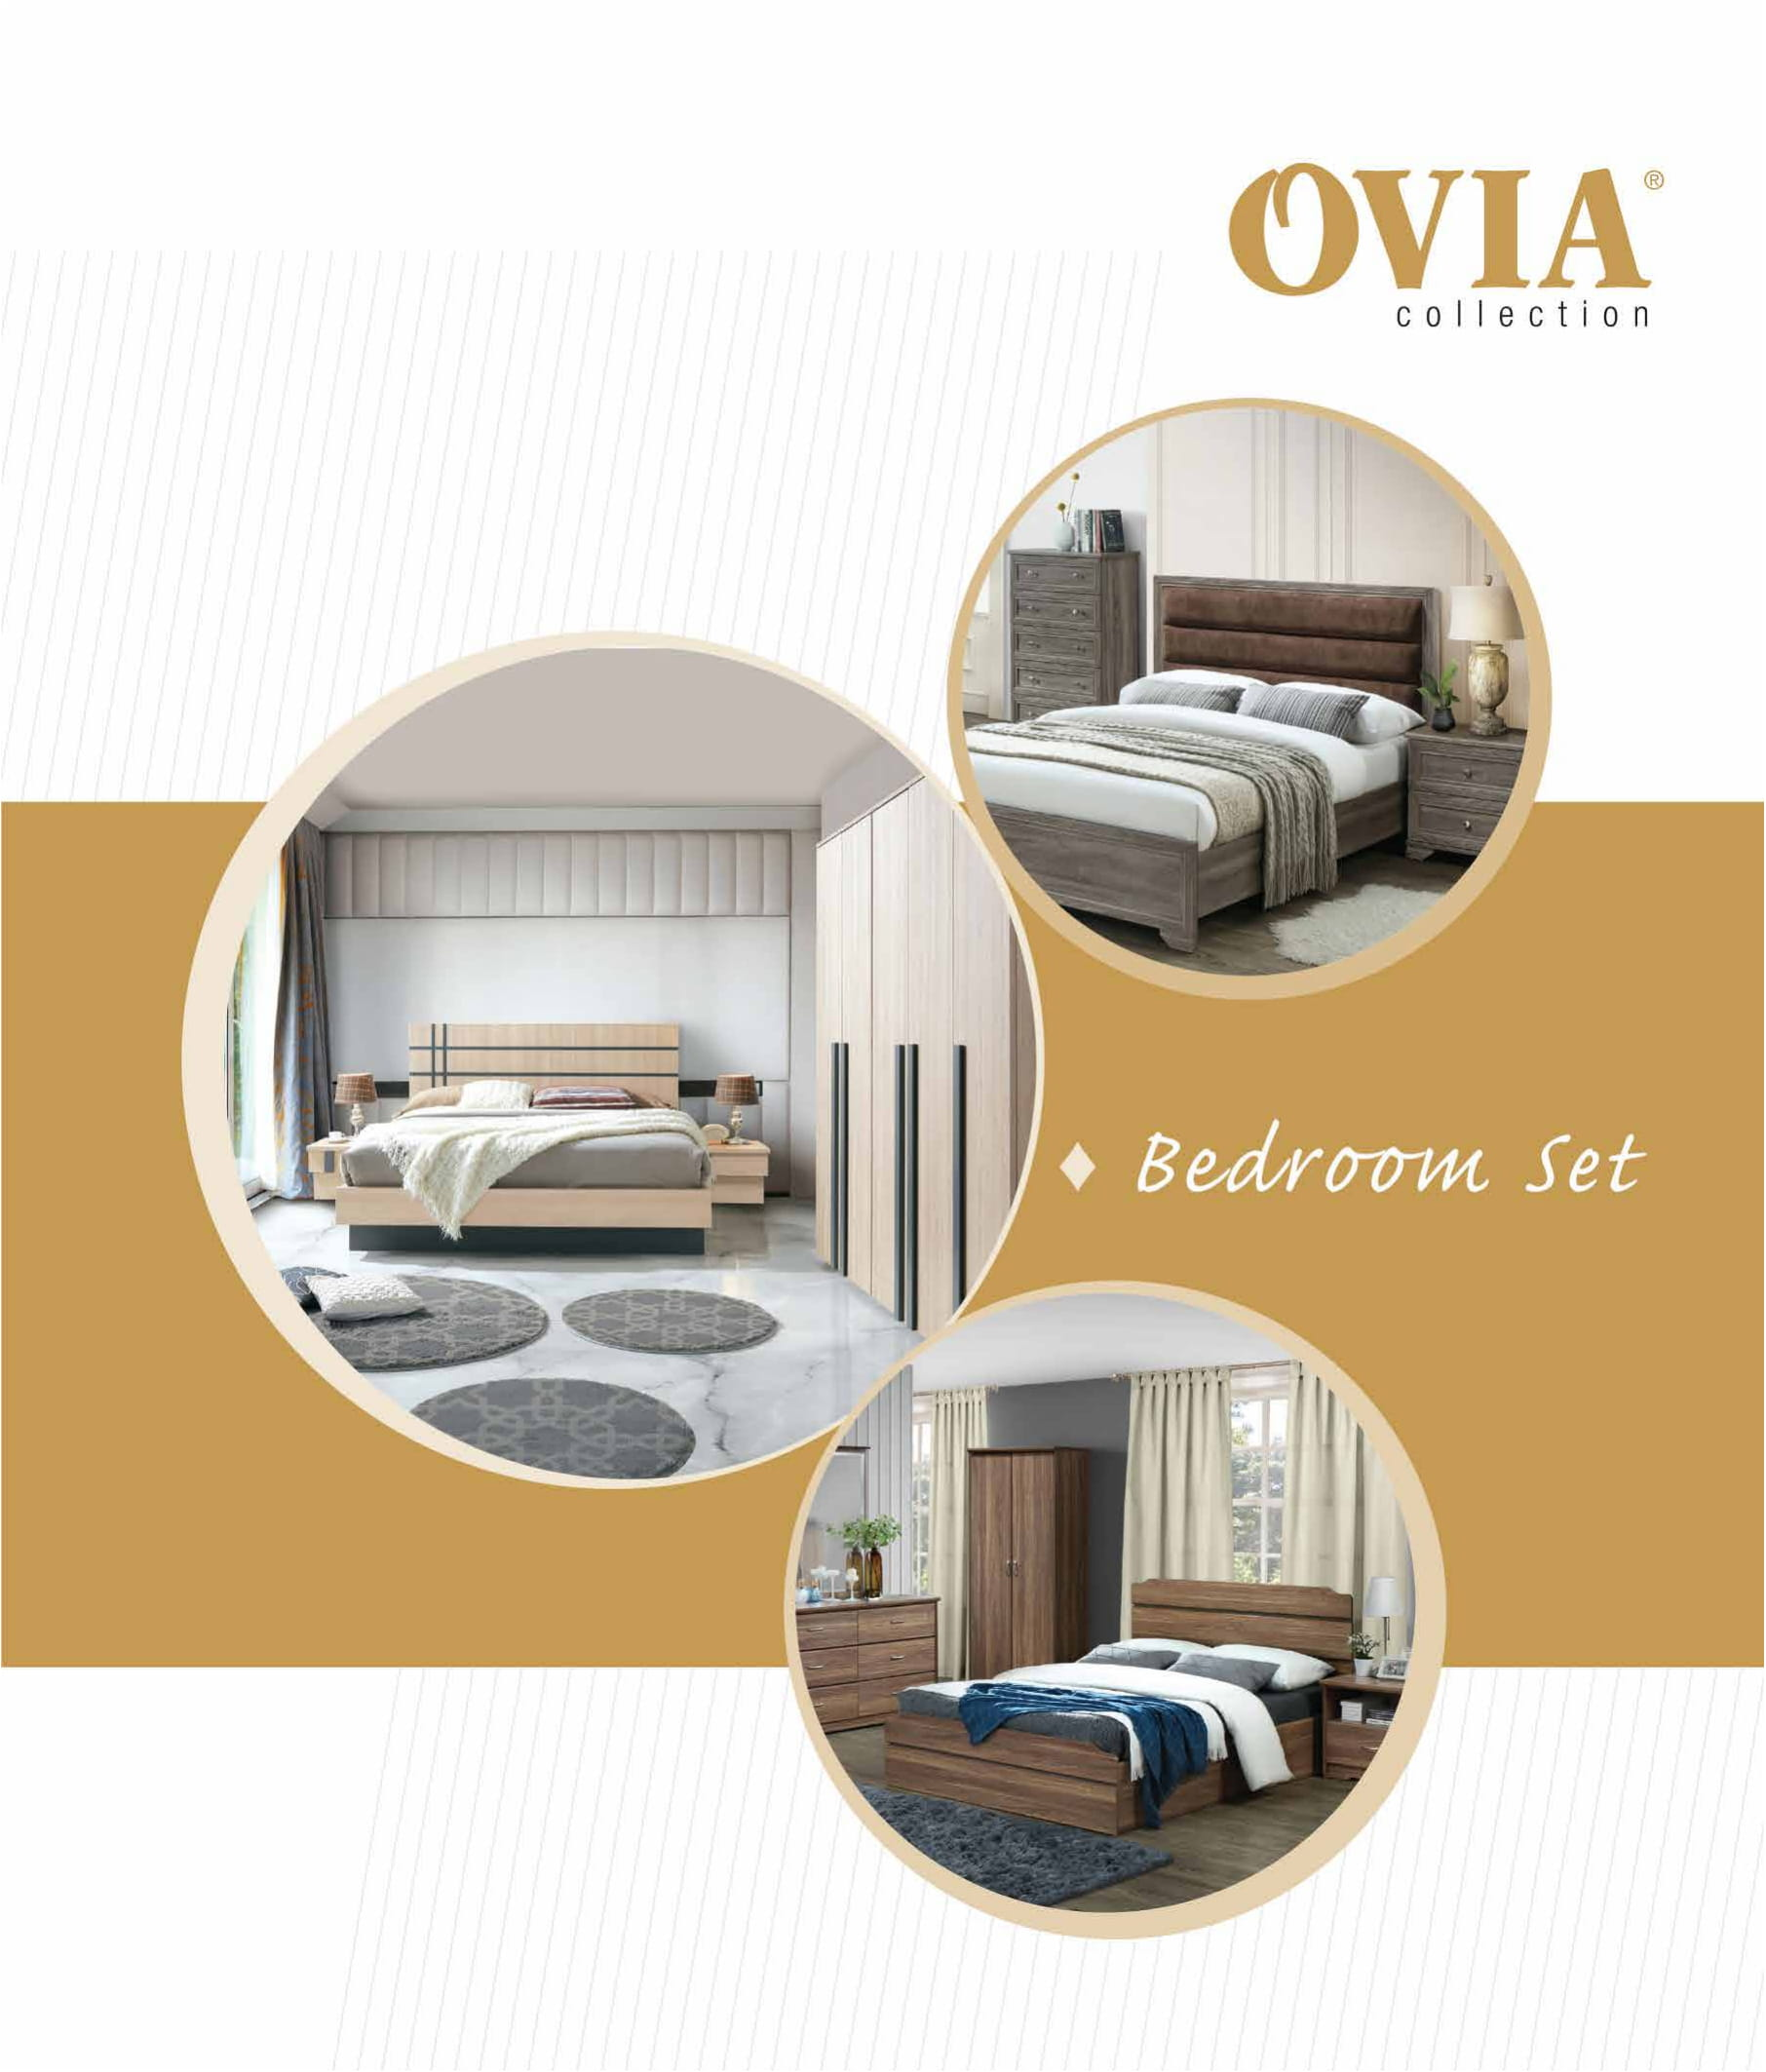 Ovia Collection 4-007